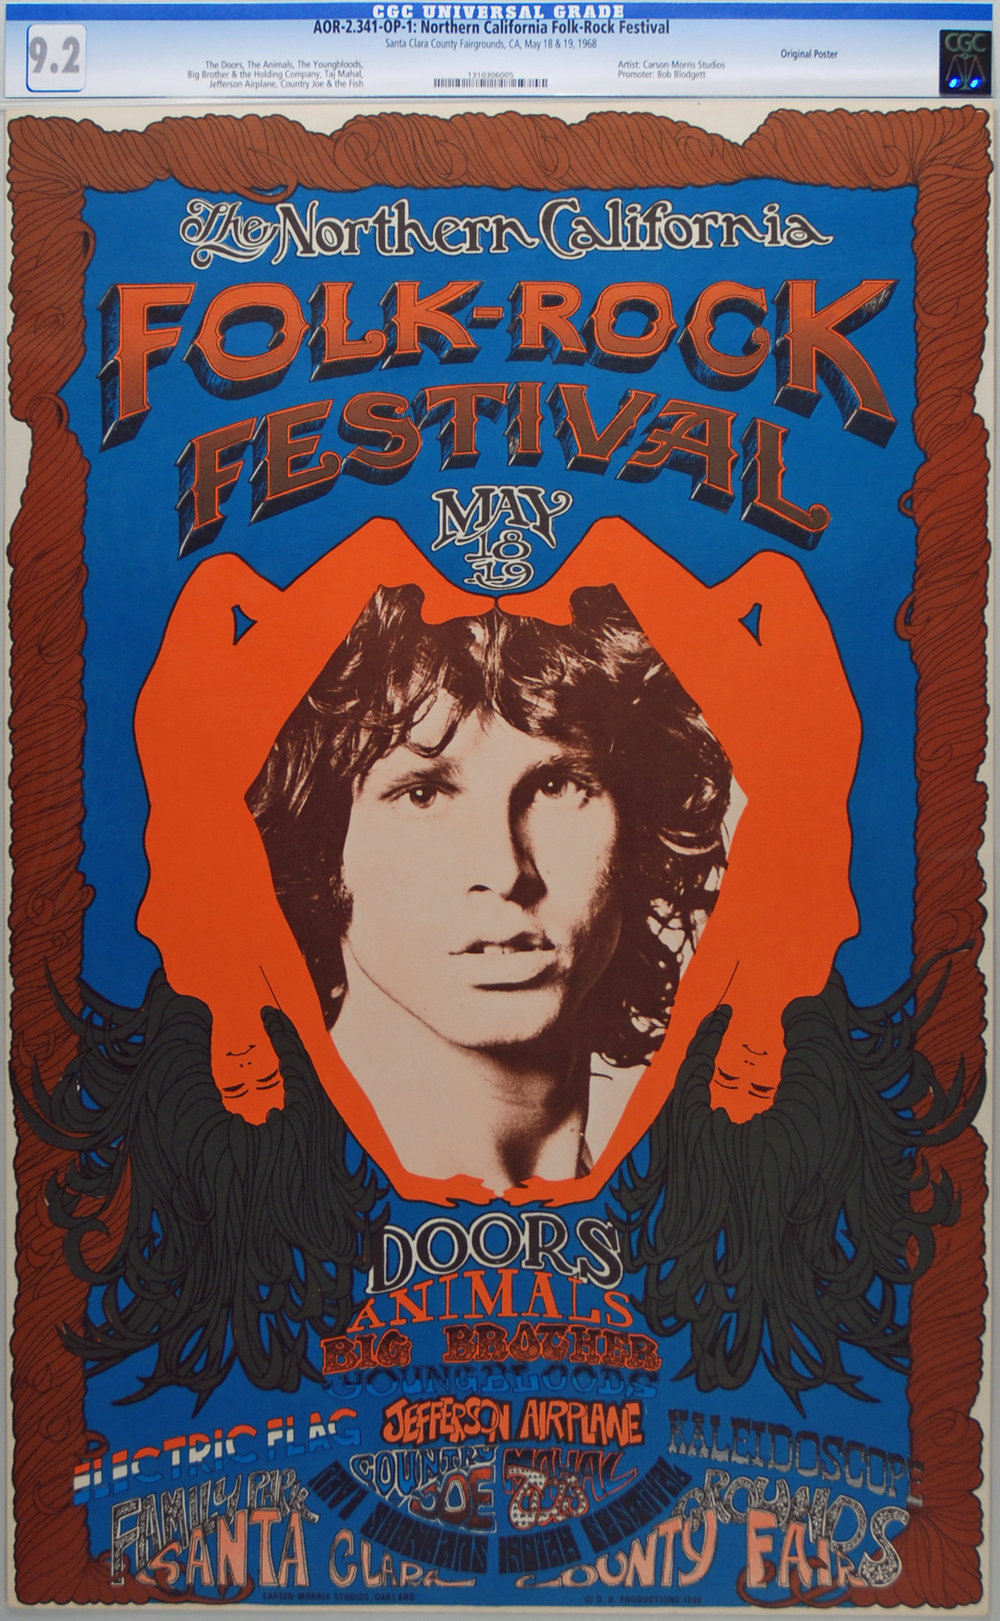 NoCal Folk Rock Fest_CGC_9.2_Cropped